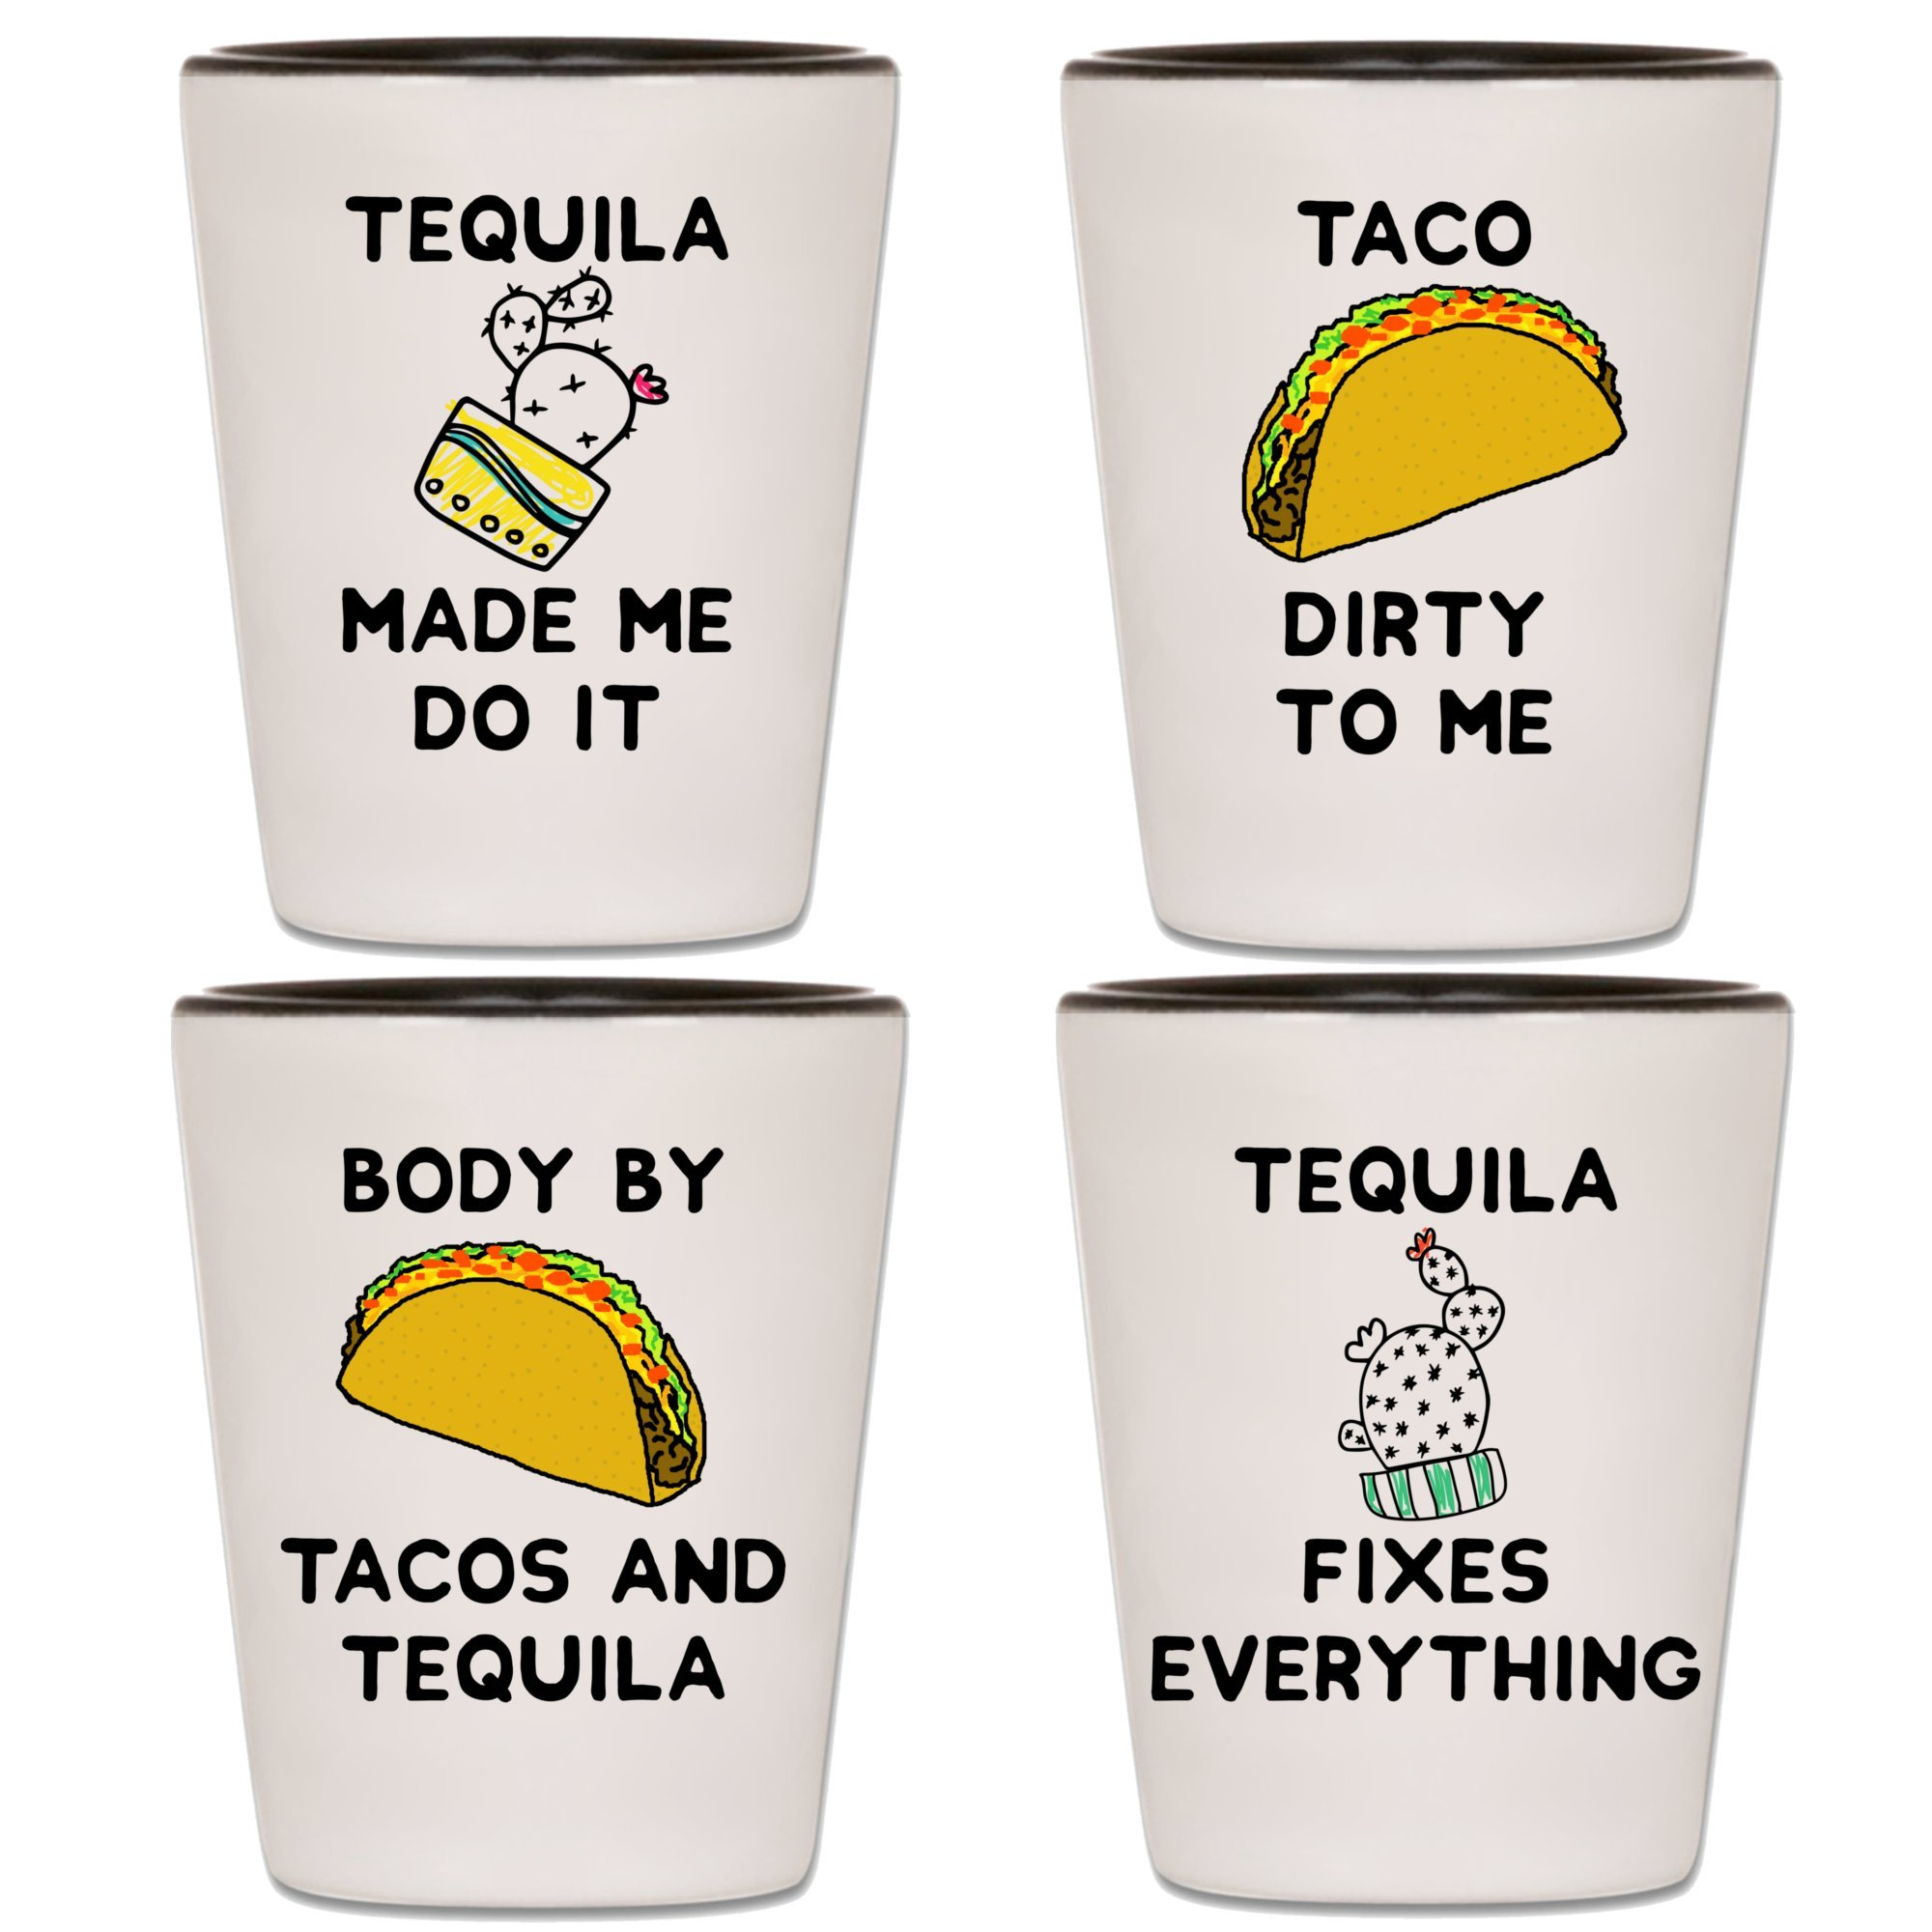 Tequila Shot Glasses - Set Of 4 Taco Tuesday & Cinco de Mayo Party Shooters With Funny Quotes & Sayings - Unique Novelty Mexico Drinking Shotglasses - Fun Gift For Men, Women, Adults & 21st Birthday